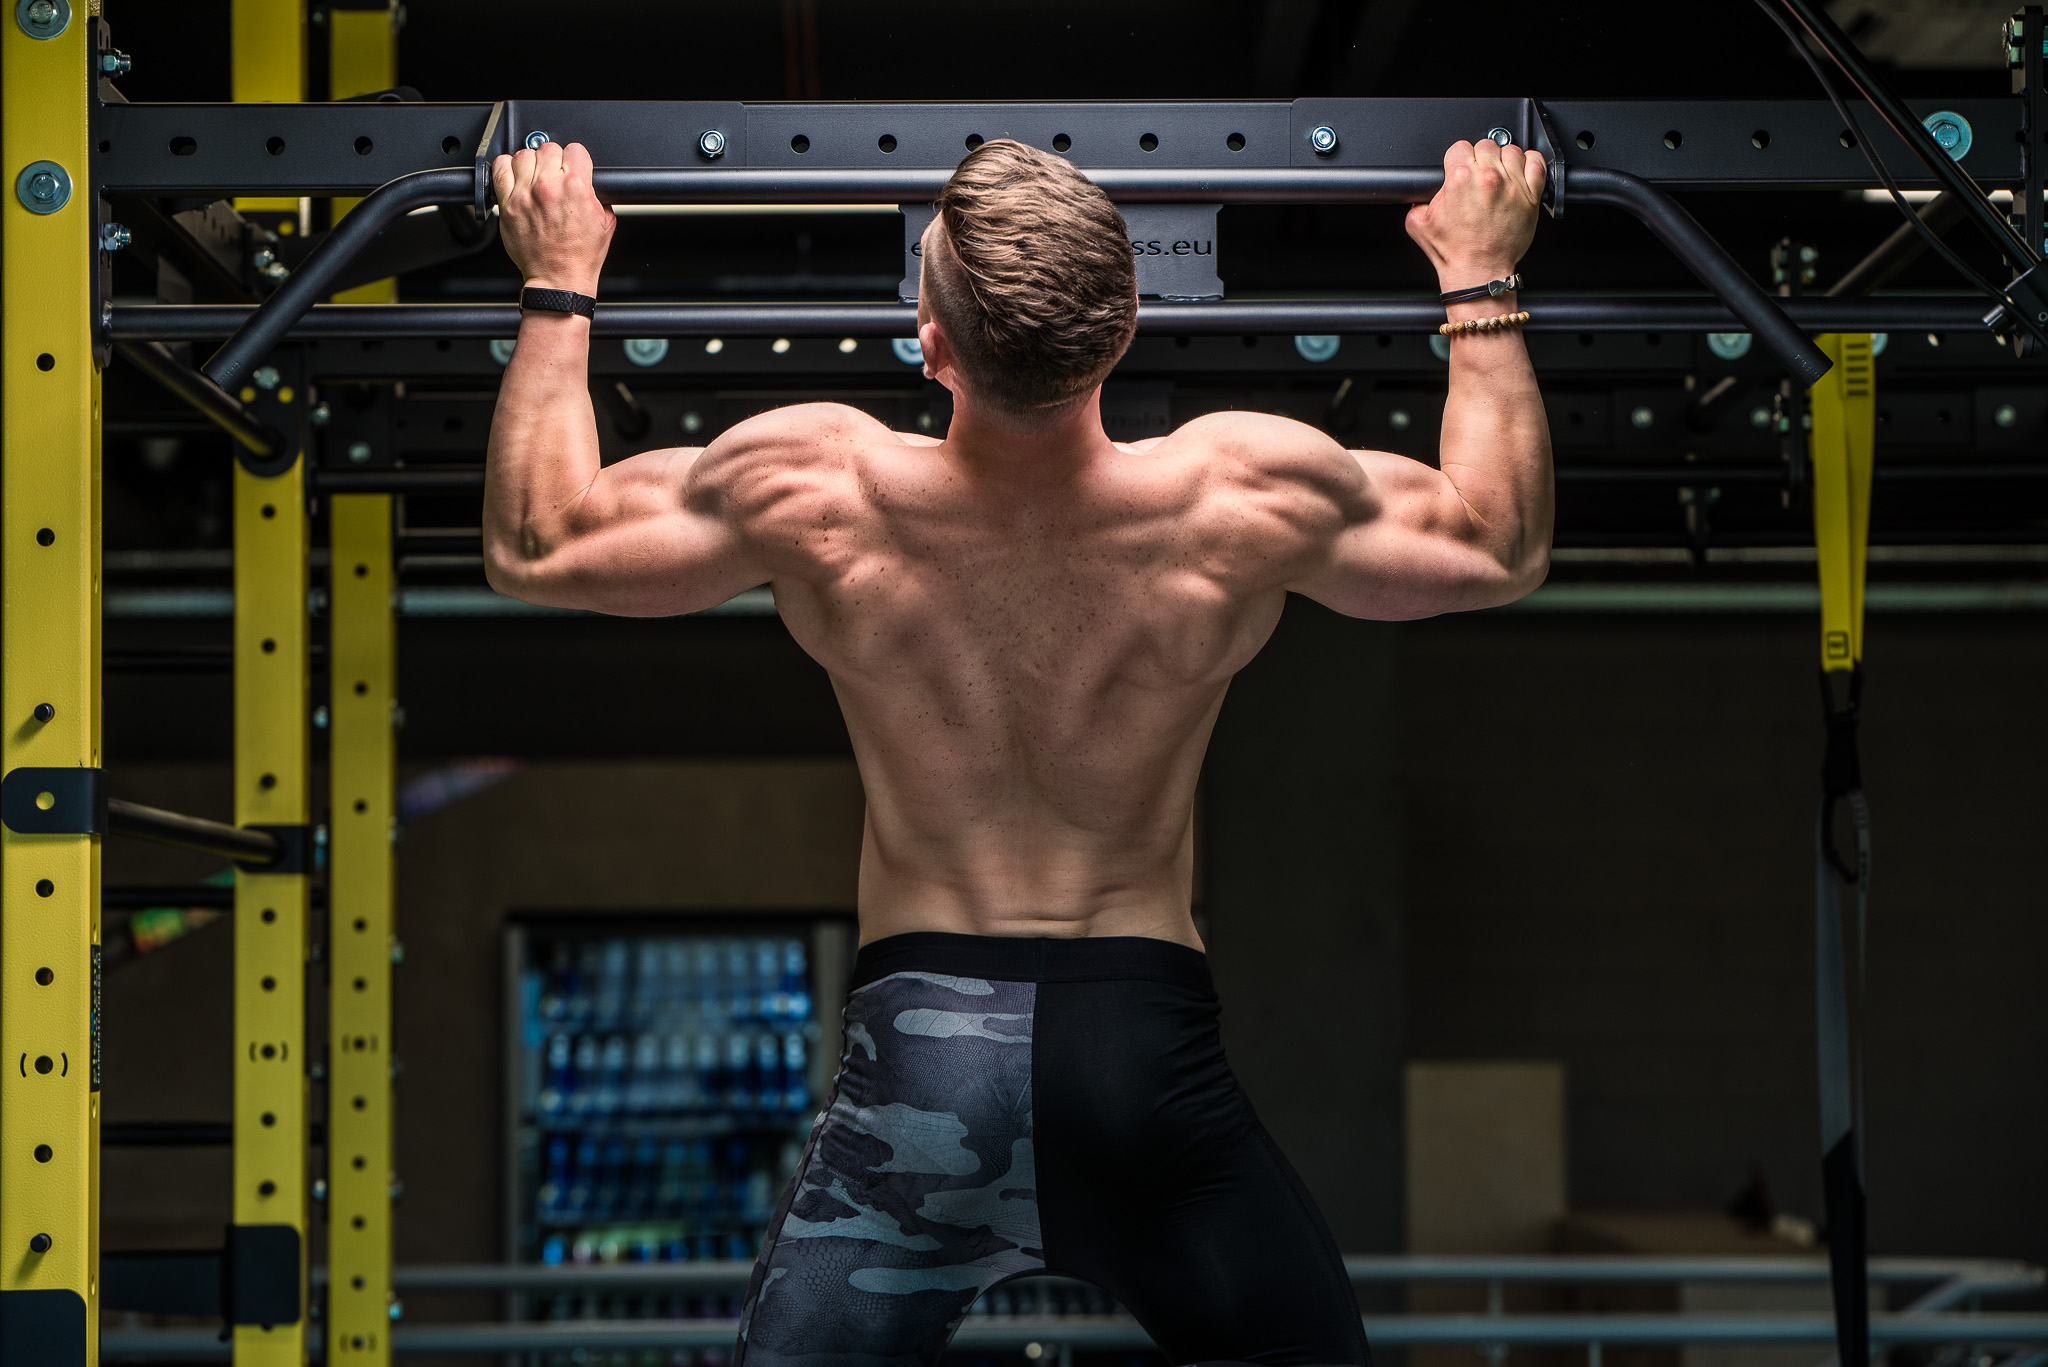 Pull-ups with Egert Oiov